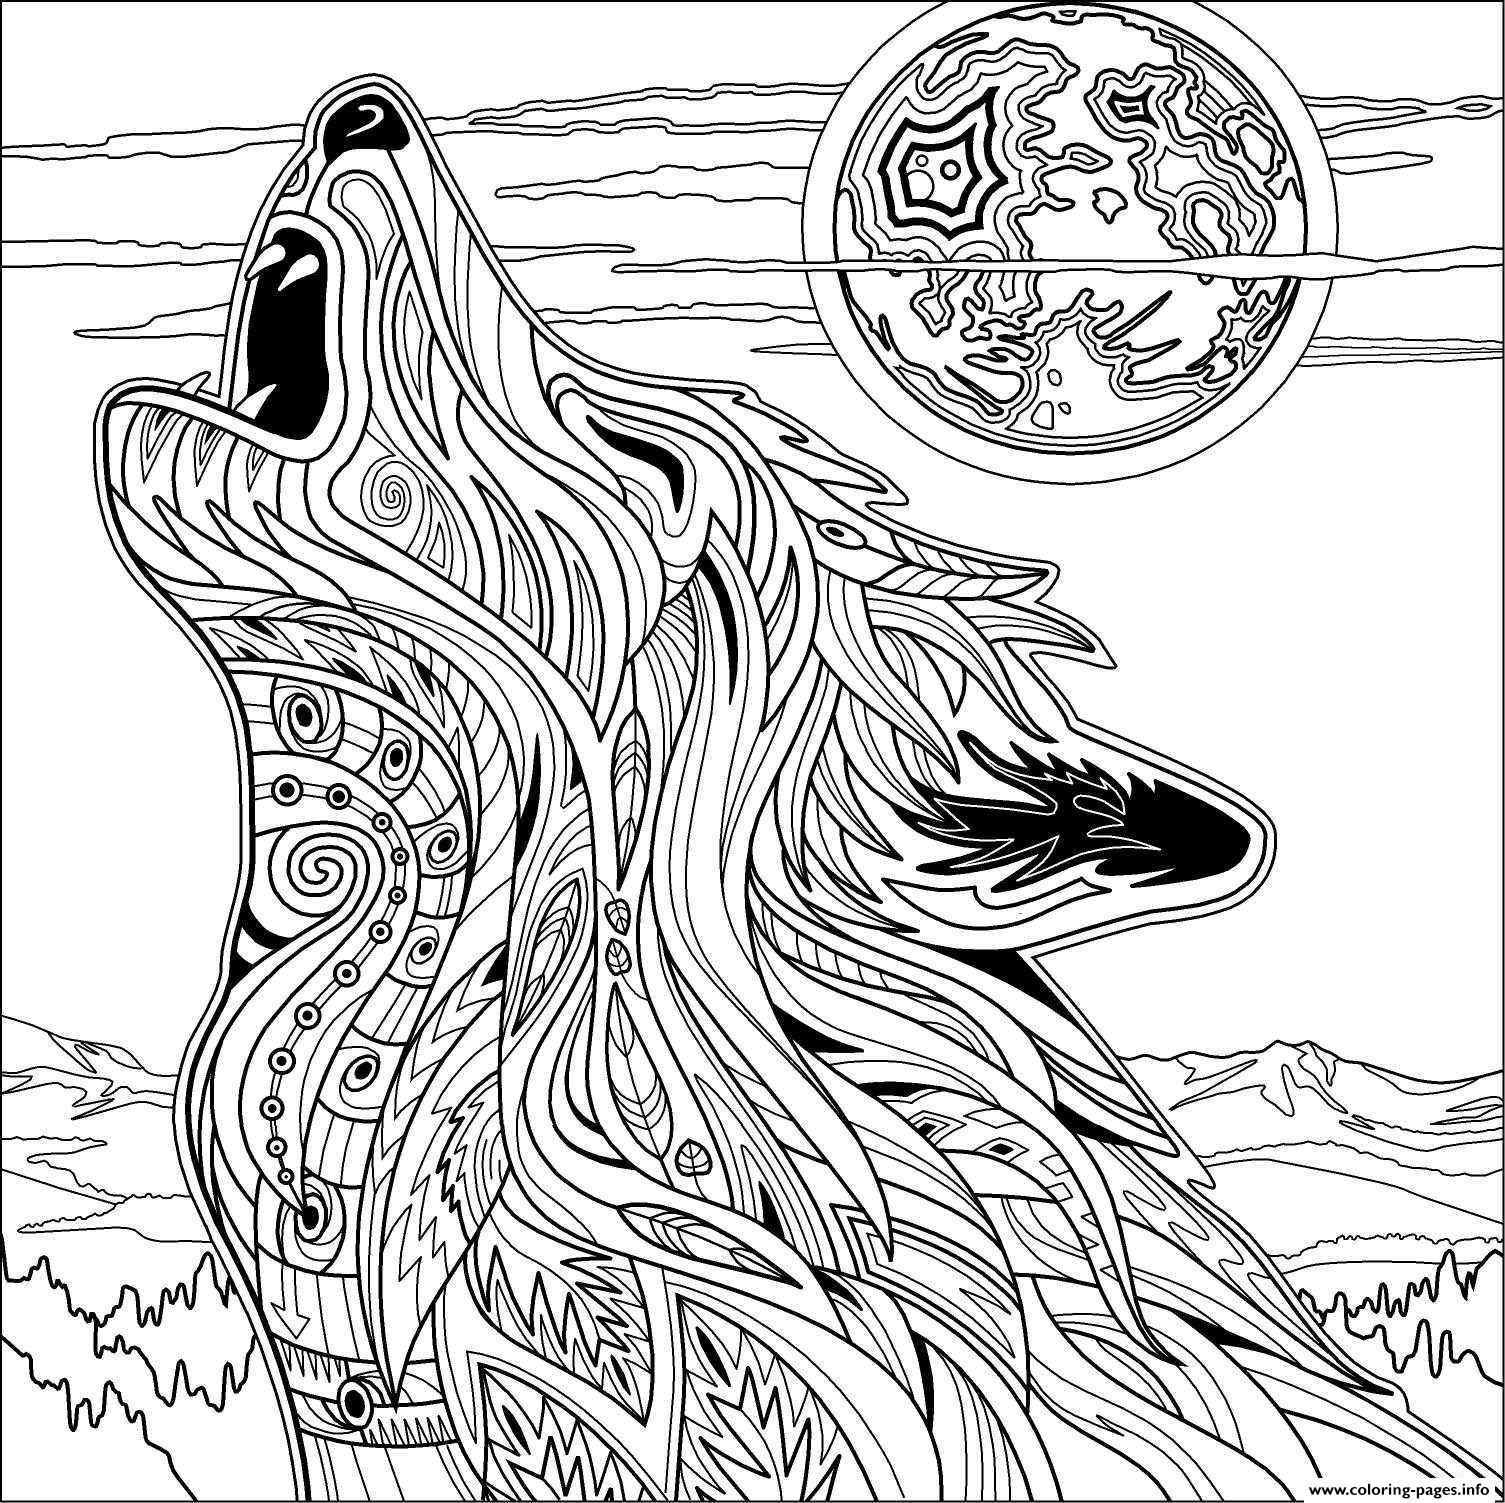 Werewolf Coloring Pages For Adults Part 5 Free Resource For Teaching Coloring Home